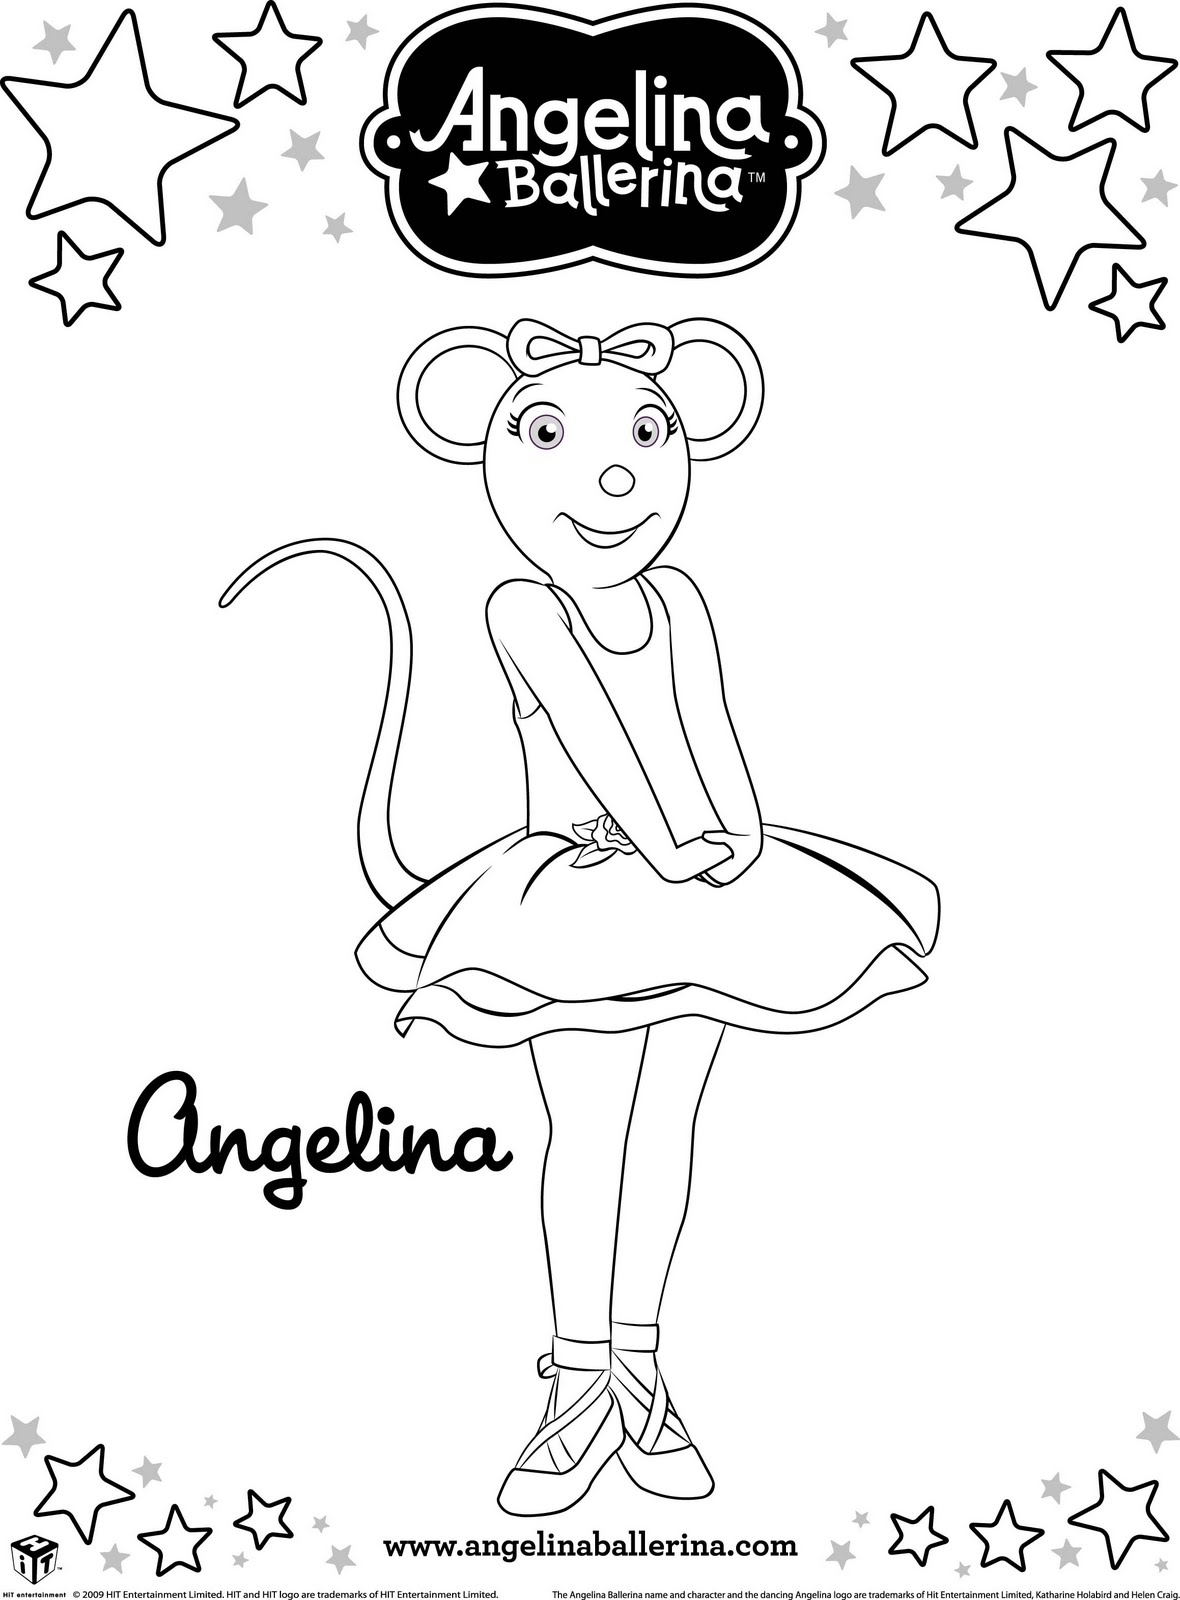 angelina ballerina alice coloring pages - photo#13